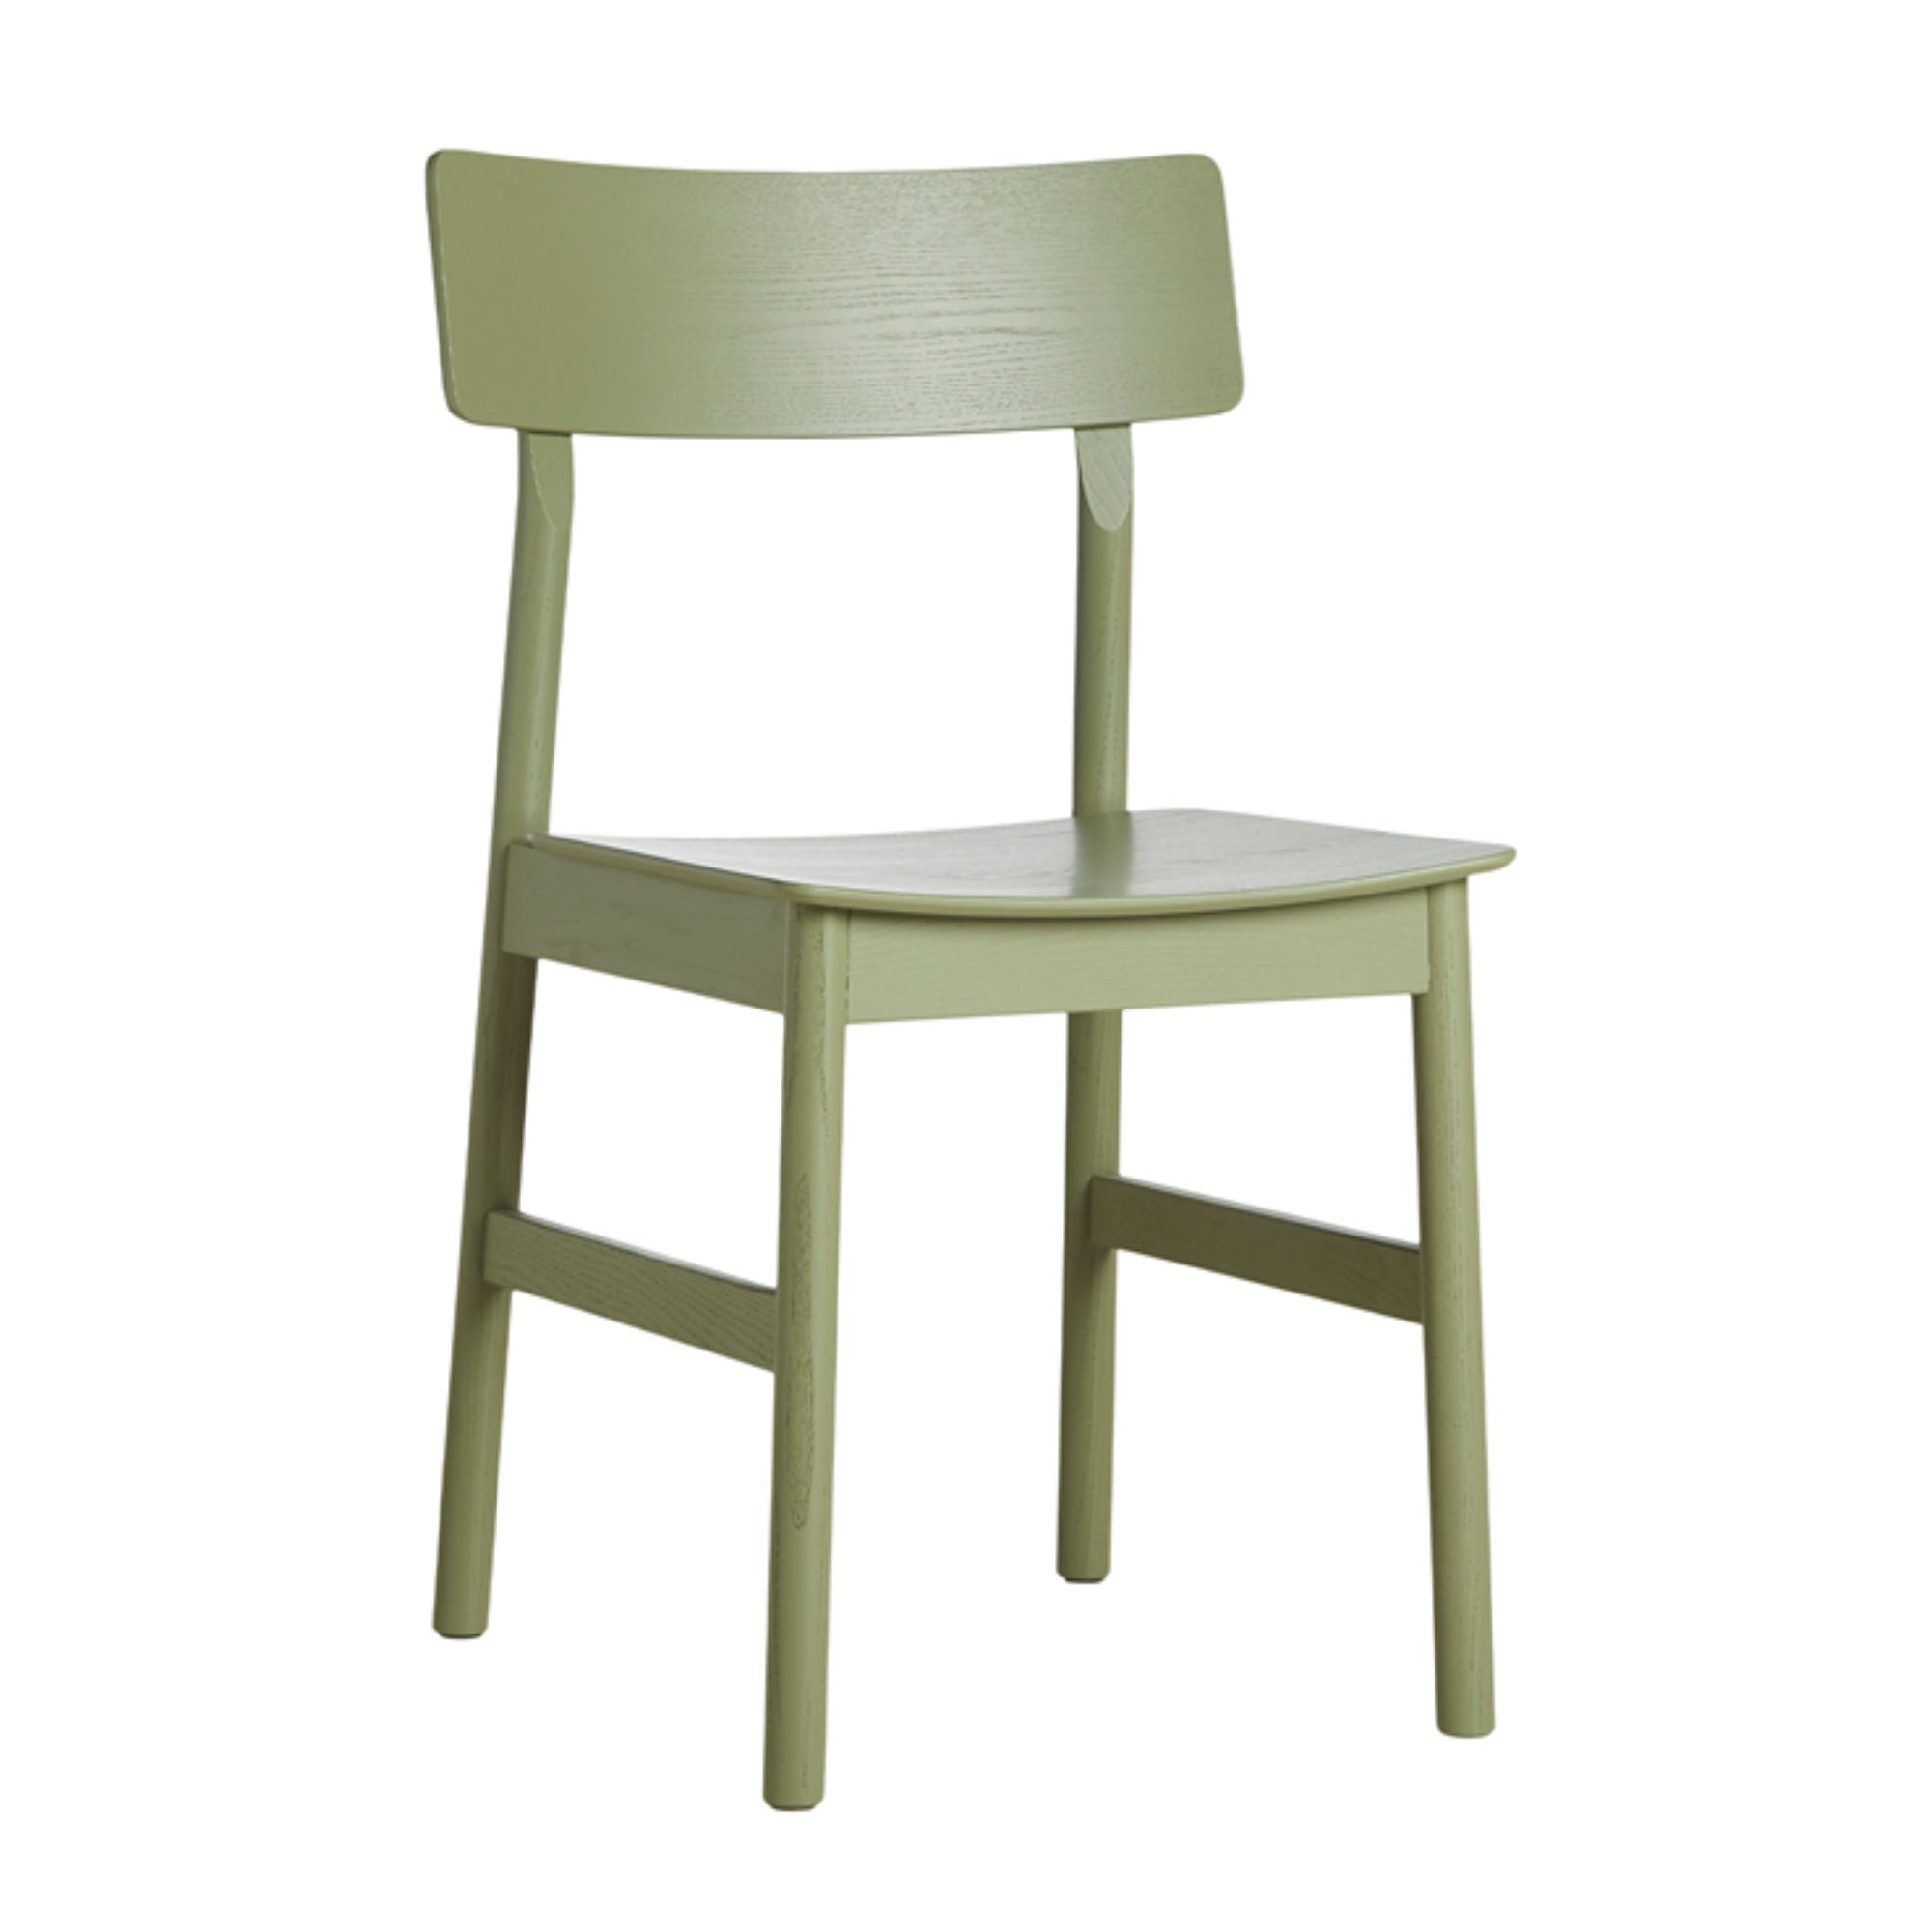 Woud Pause Dining Chair , Olive Green Painted Ash